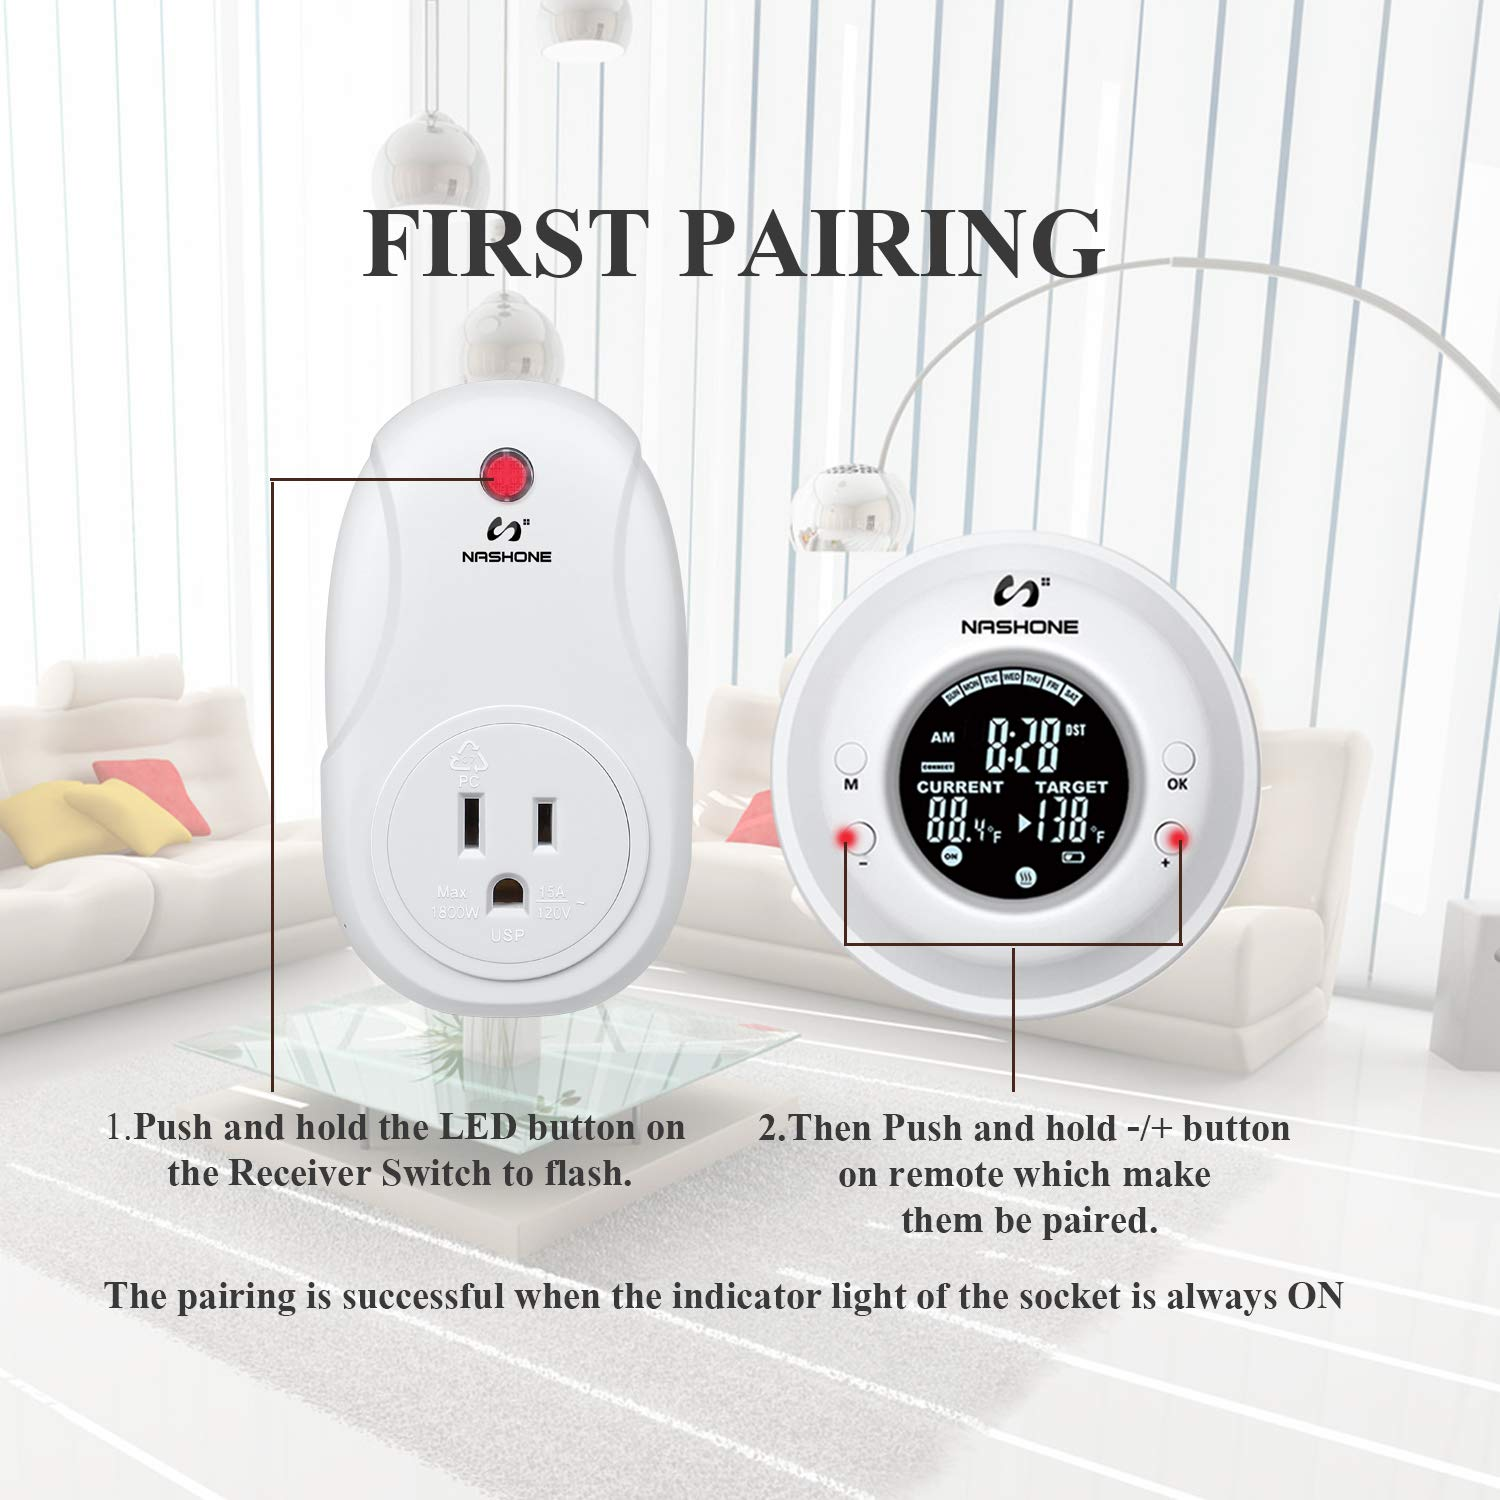 Nashone Temperature Controlled Outlet,Digital Wireless Thermostat Built in Temp